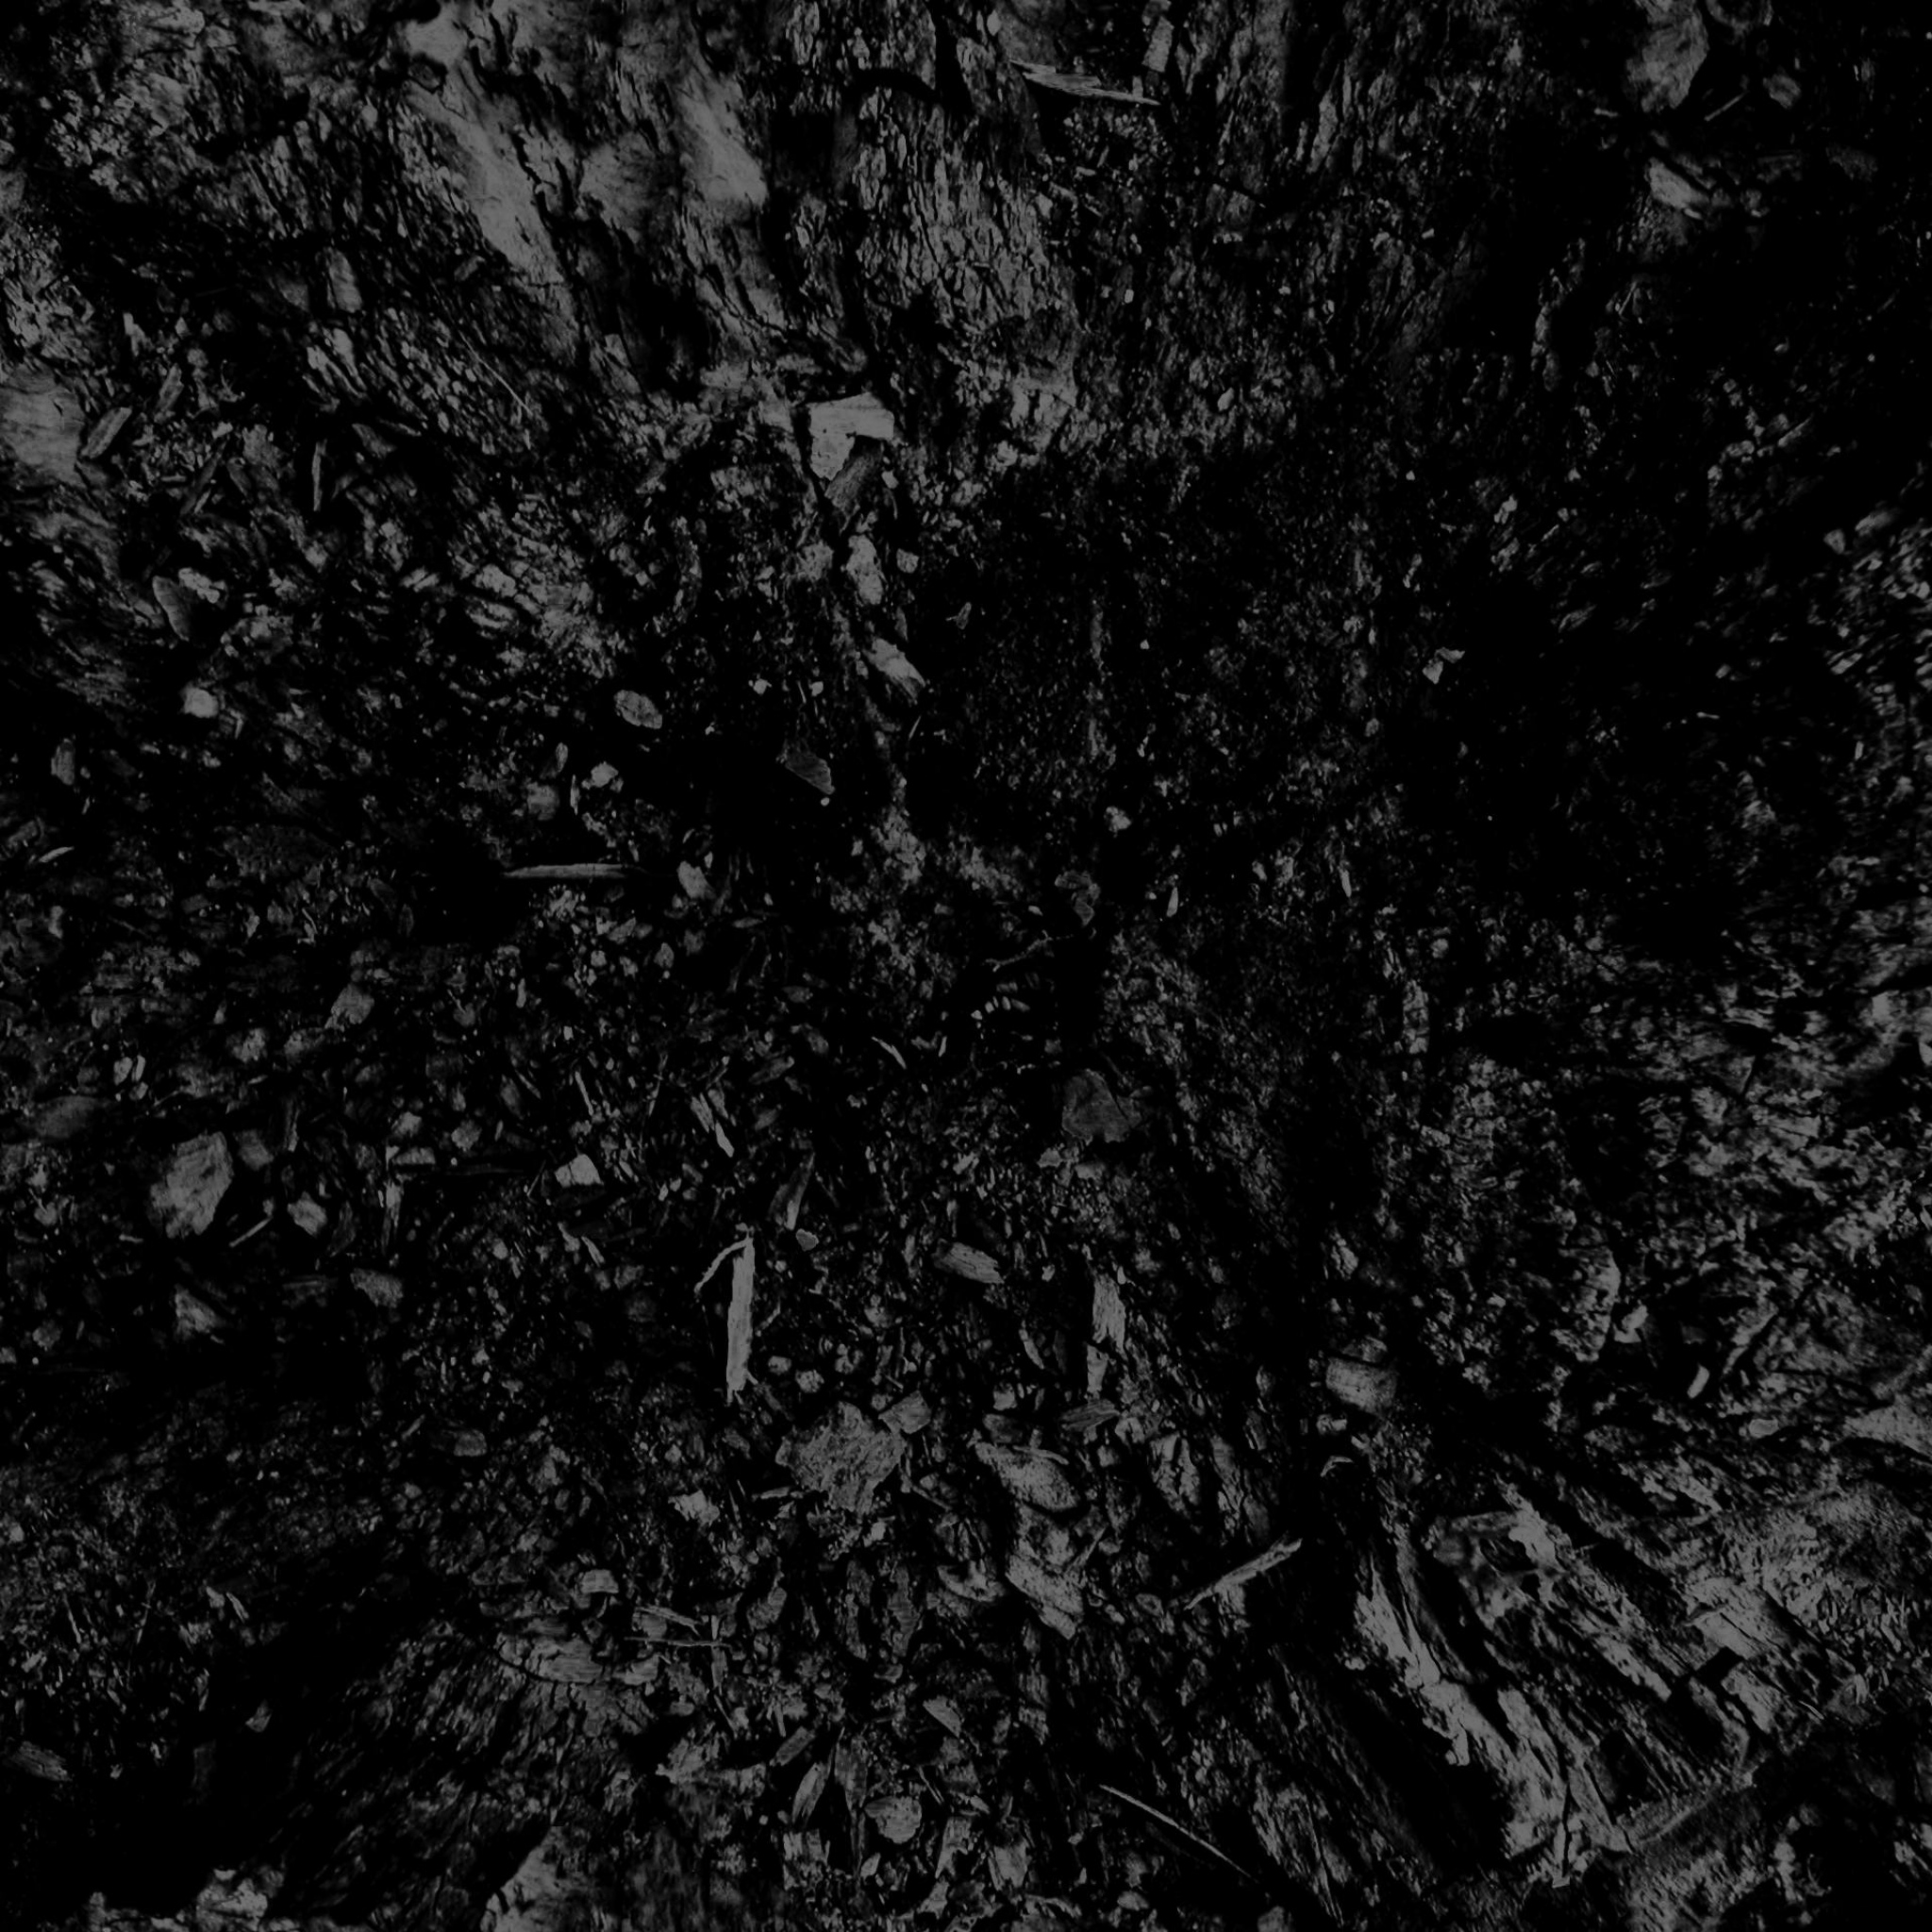 2048x2048 Wallpaper dark black and white abstract black background 2048x2048